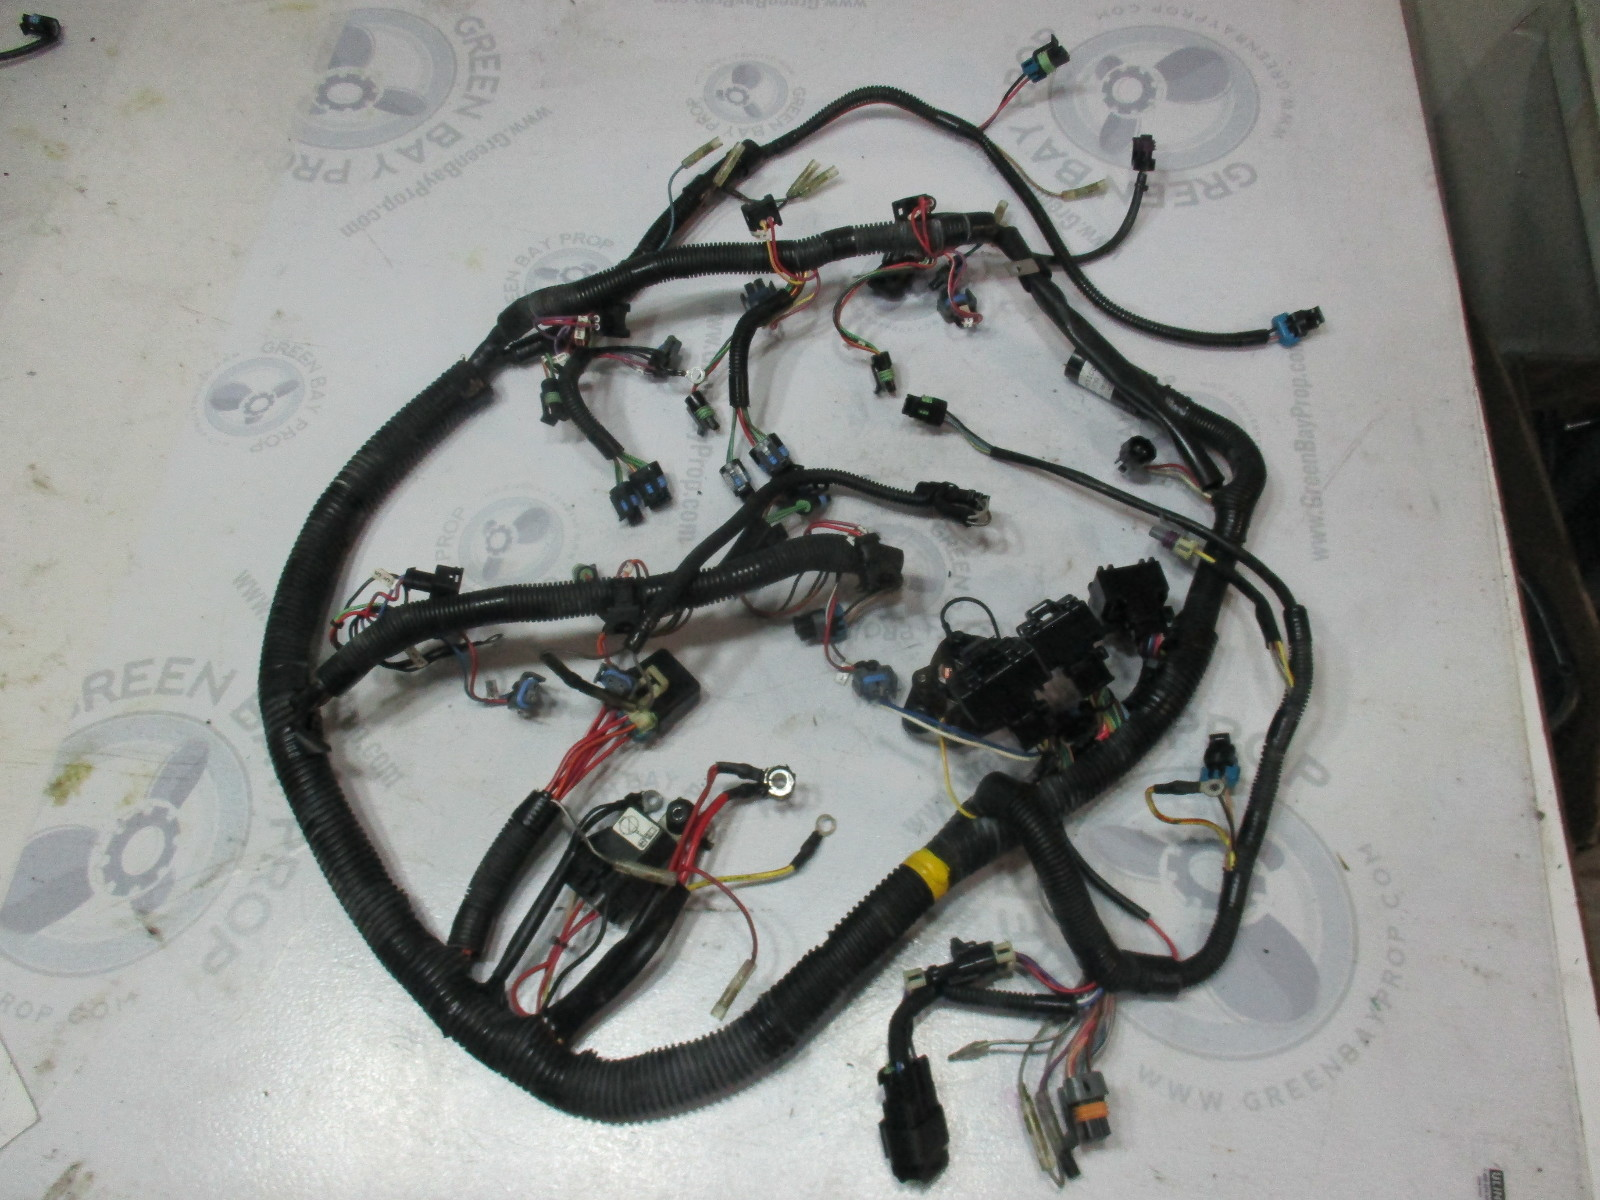 hight resolution of 84 878082t4 mercury mariner optimax dfi 200 3 0l engine cable wire harness green bay propeller marine llc